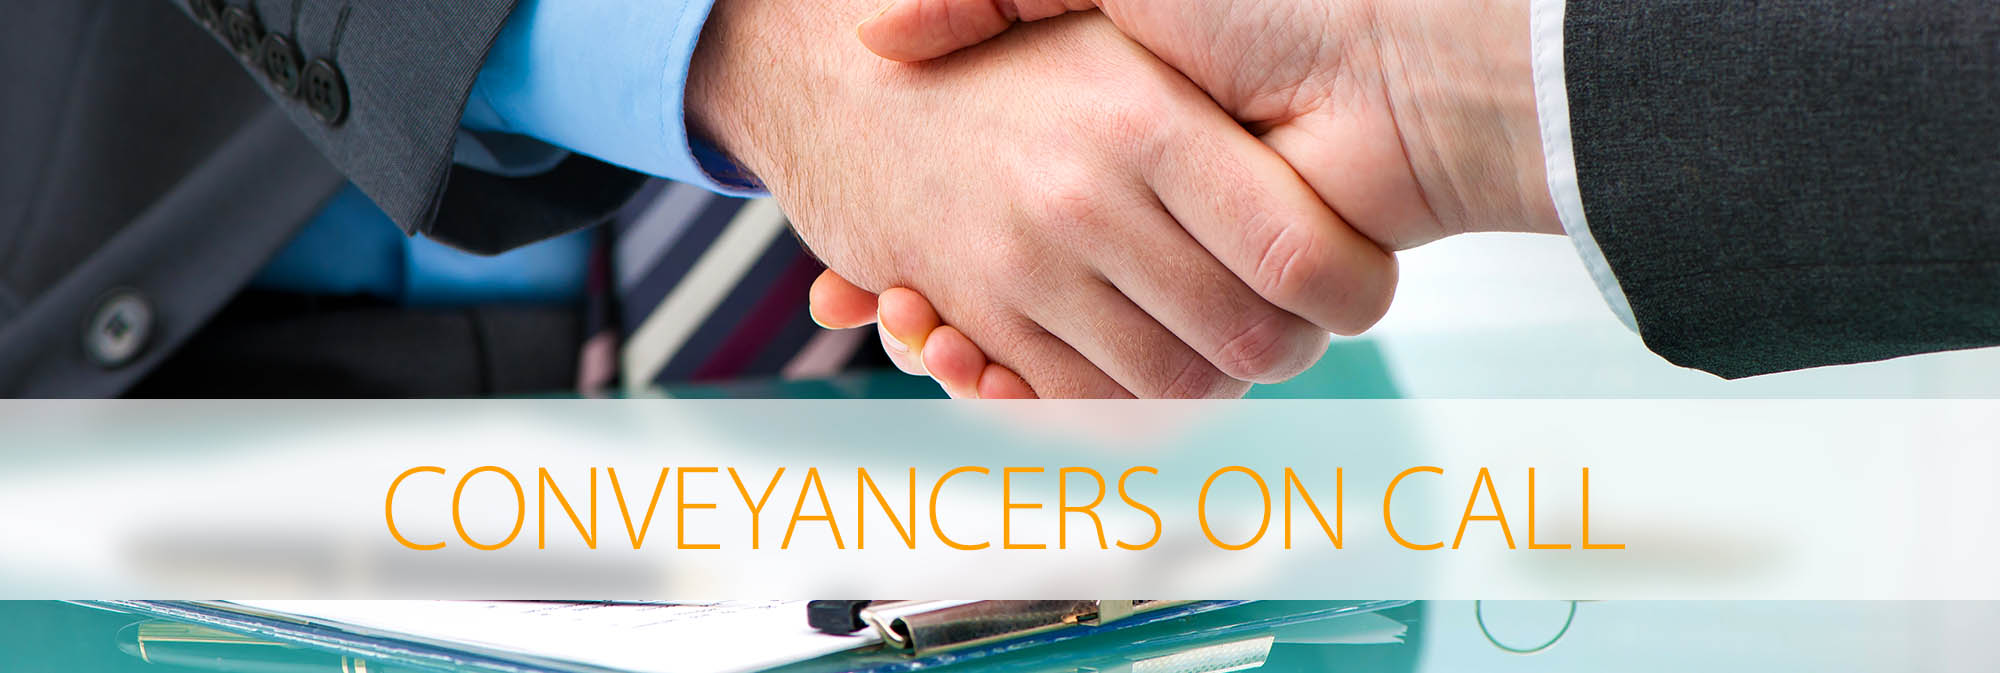 conveyancers-on-call